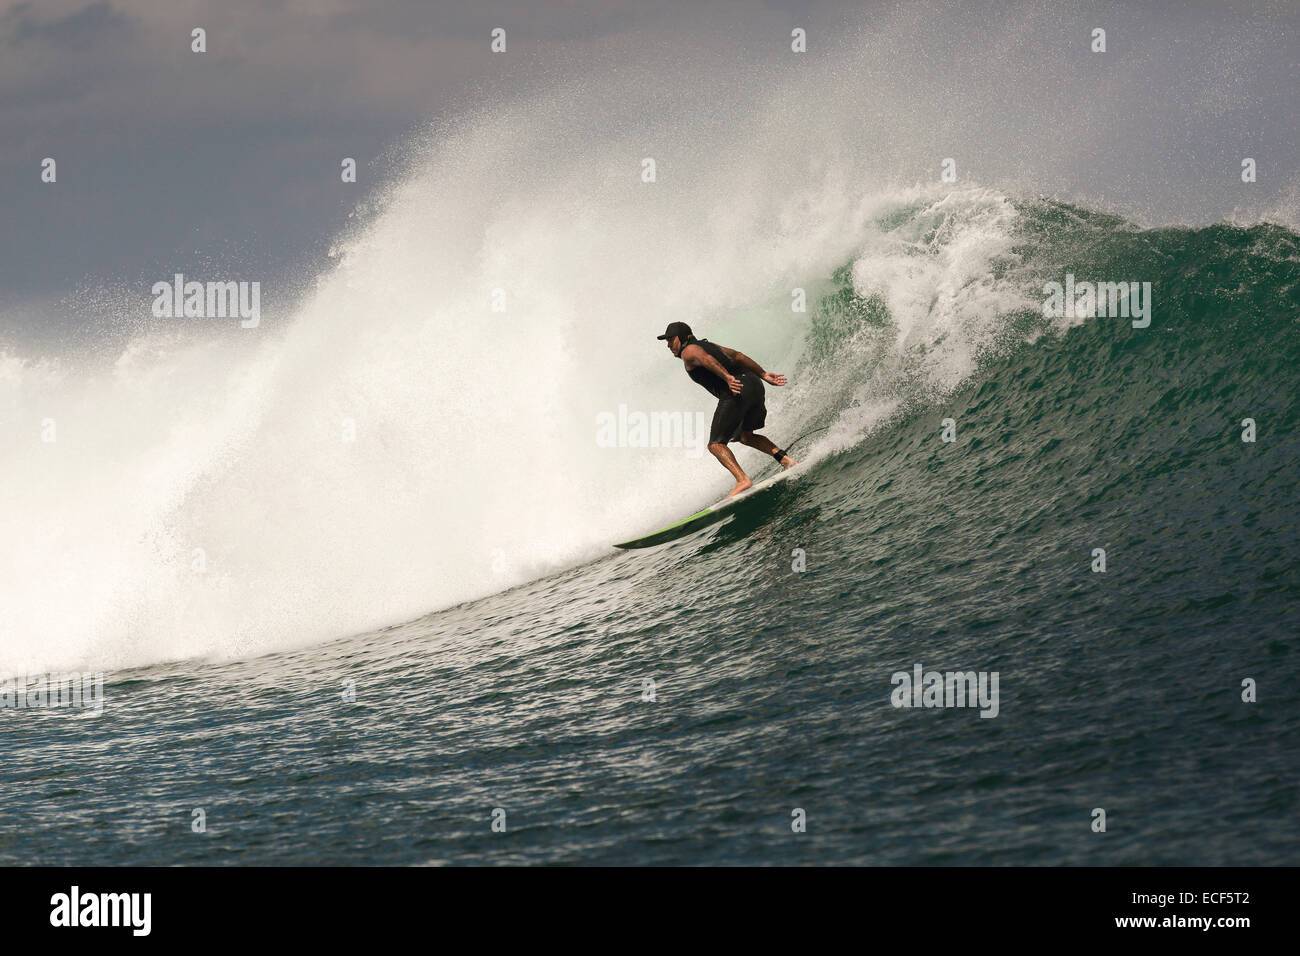 Rote Island Indonesia  city images : Surfing A Large Wave At Nembrala On Rote Island, Indonesia Stock Photo ...